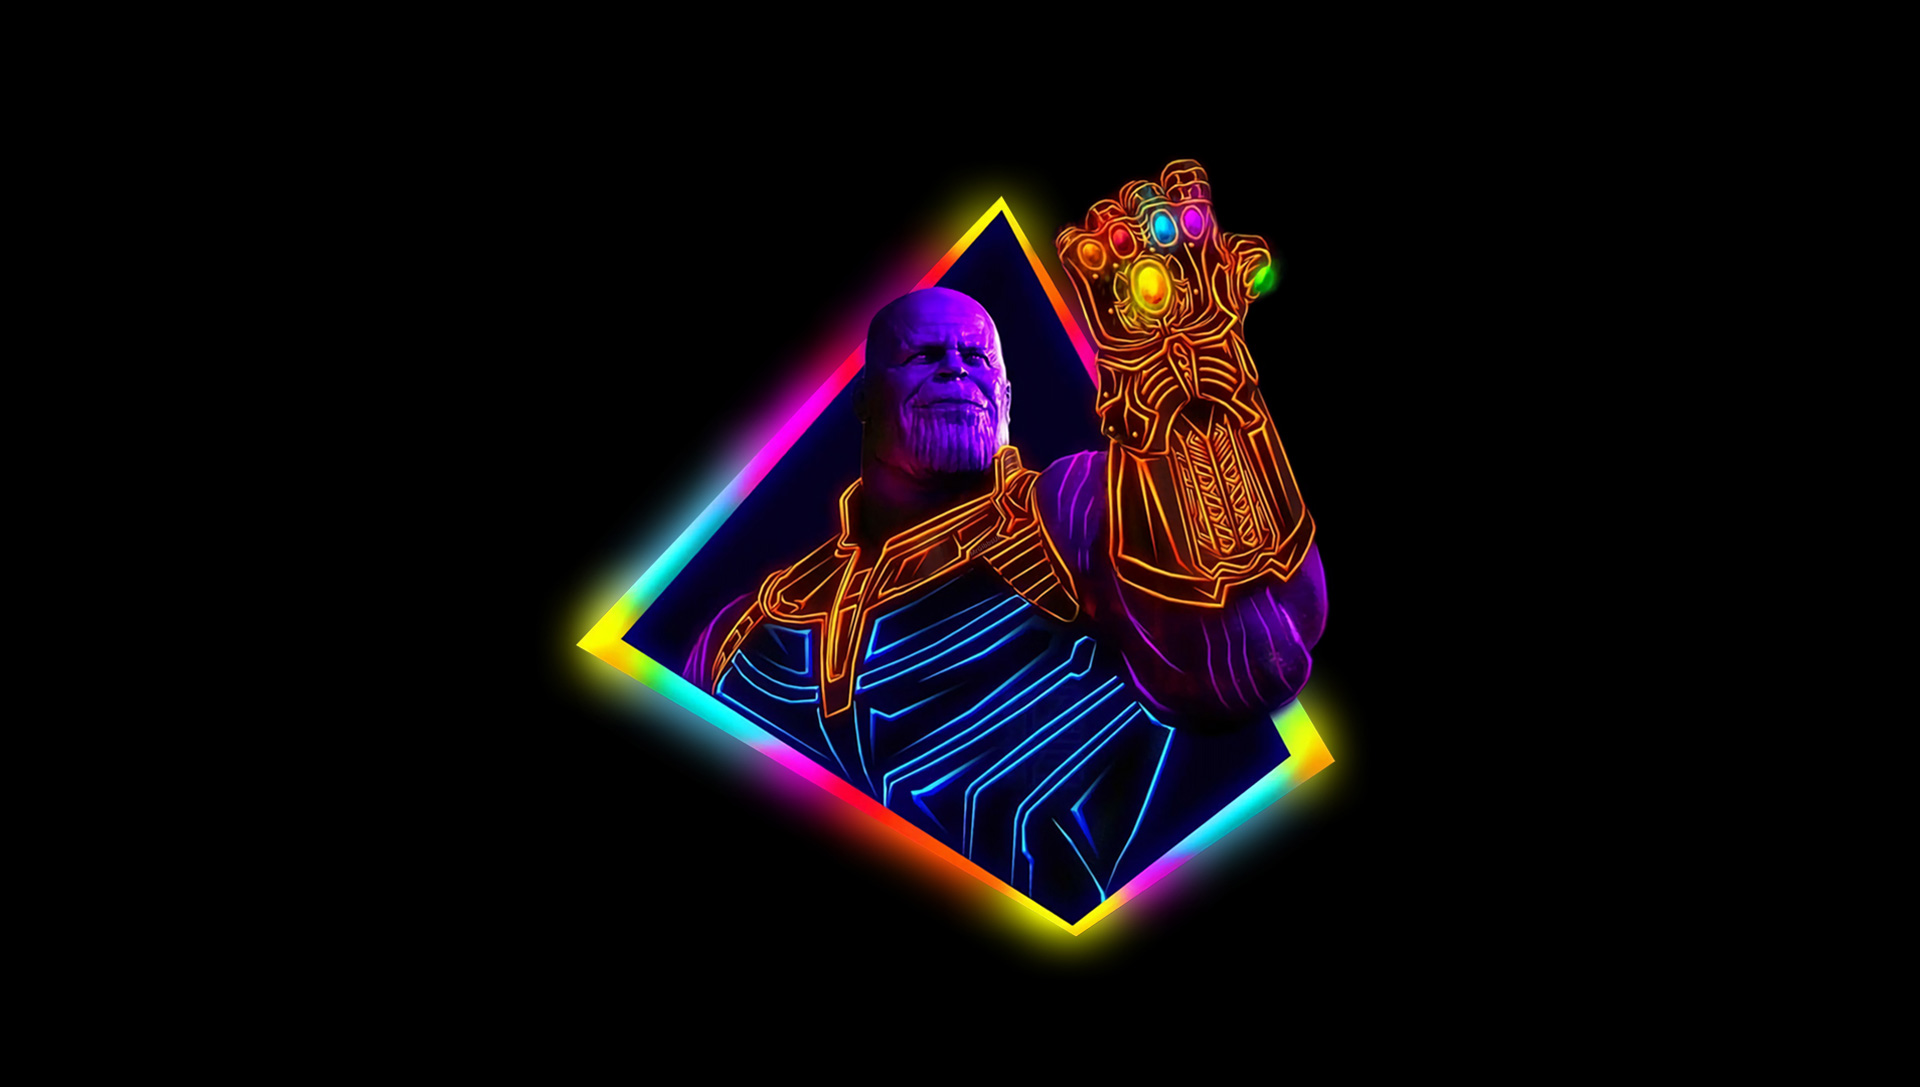 Avengers Infinity War Iphone Wallpaper: 1125x2436 Thanos Avengers Infinity War 80S Style Artwork